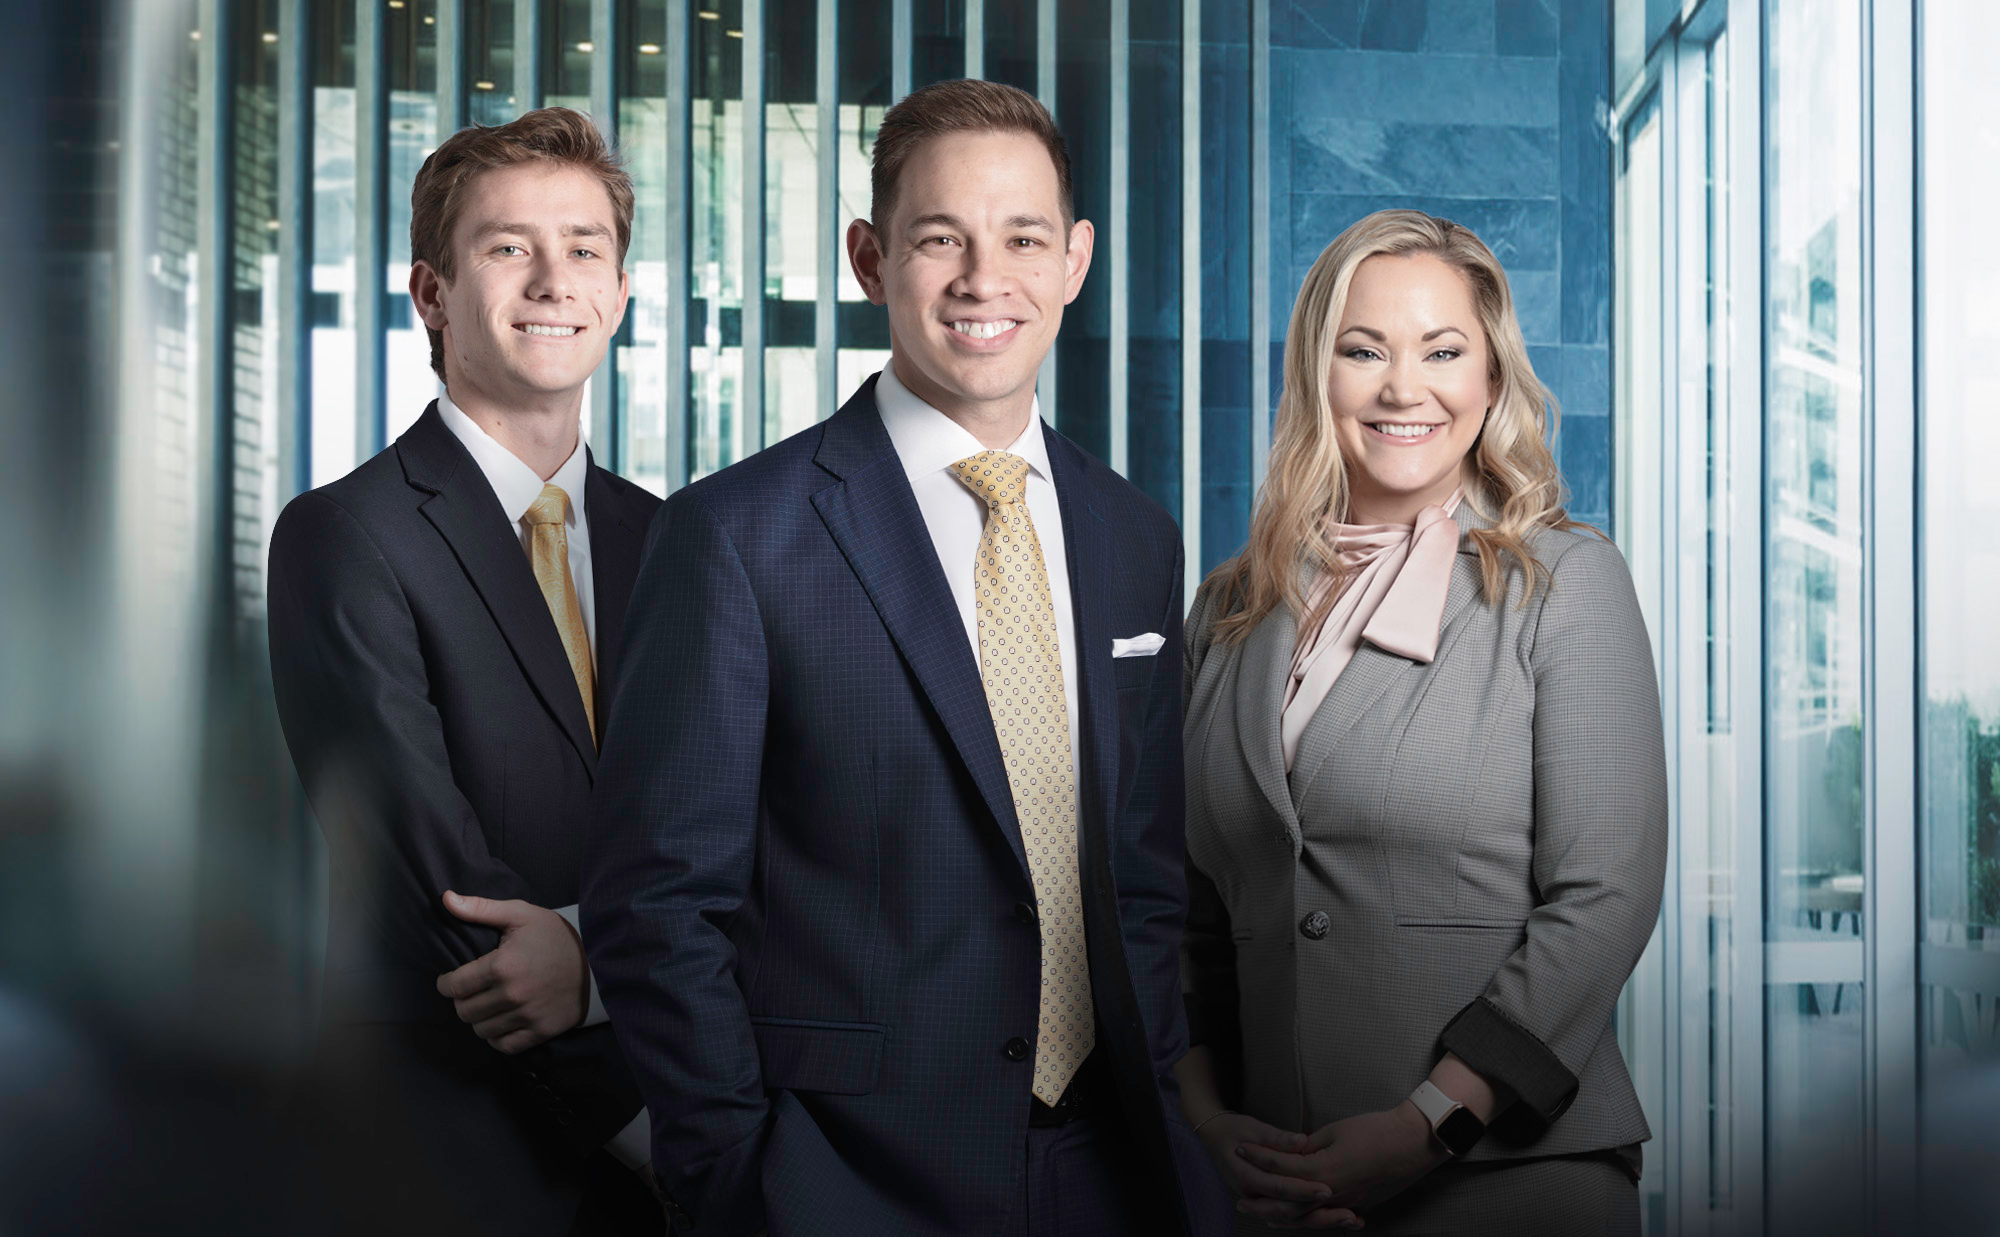 Picture of the theorem wealth management team